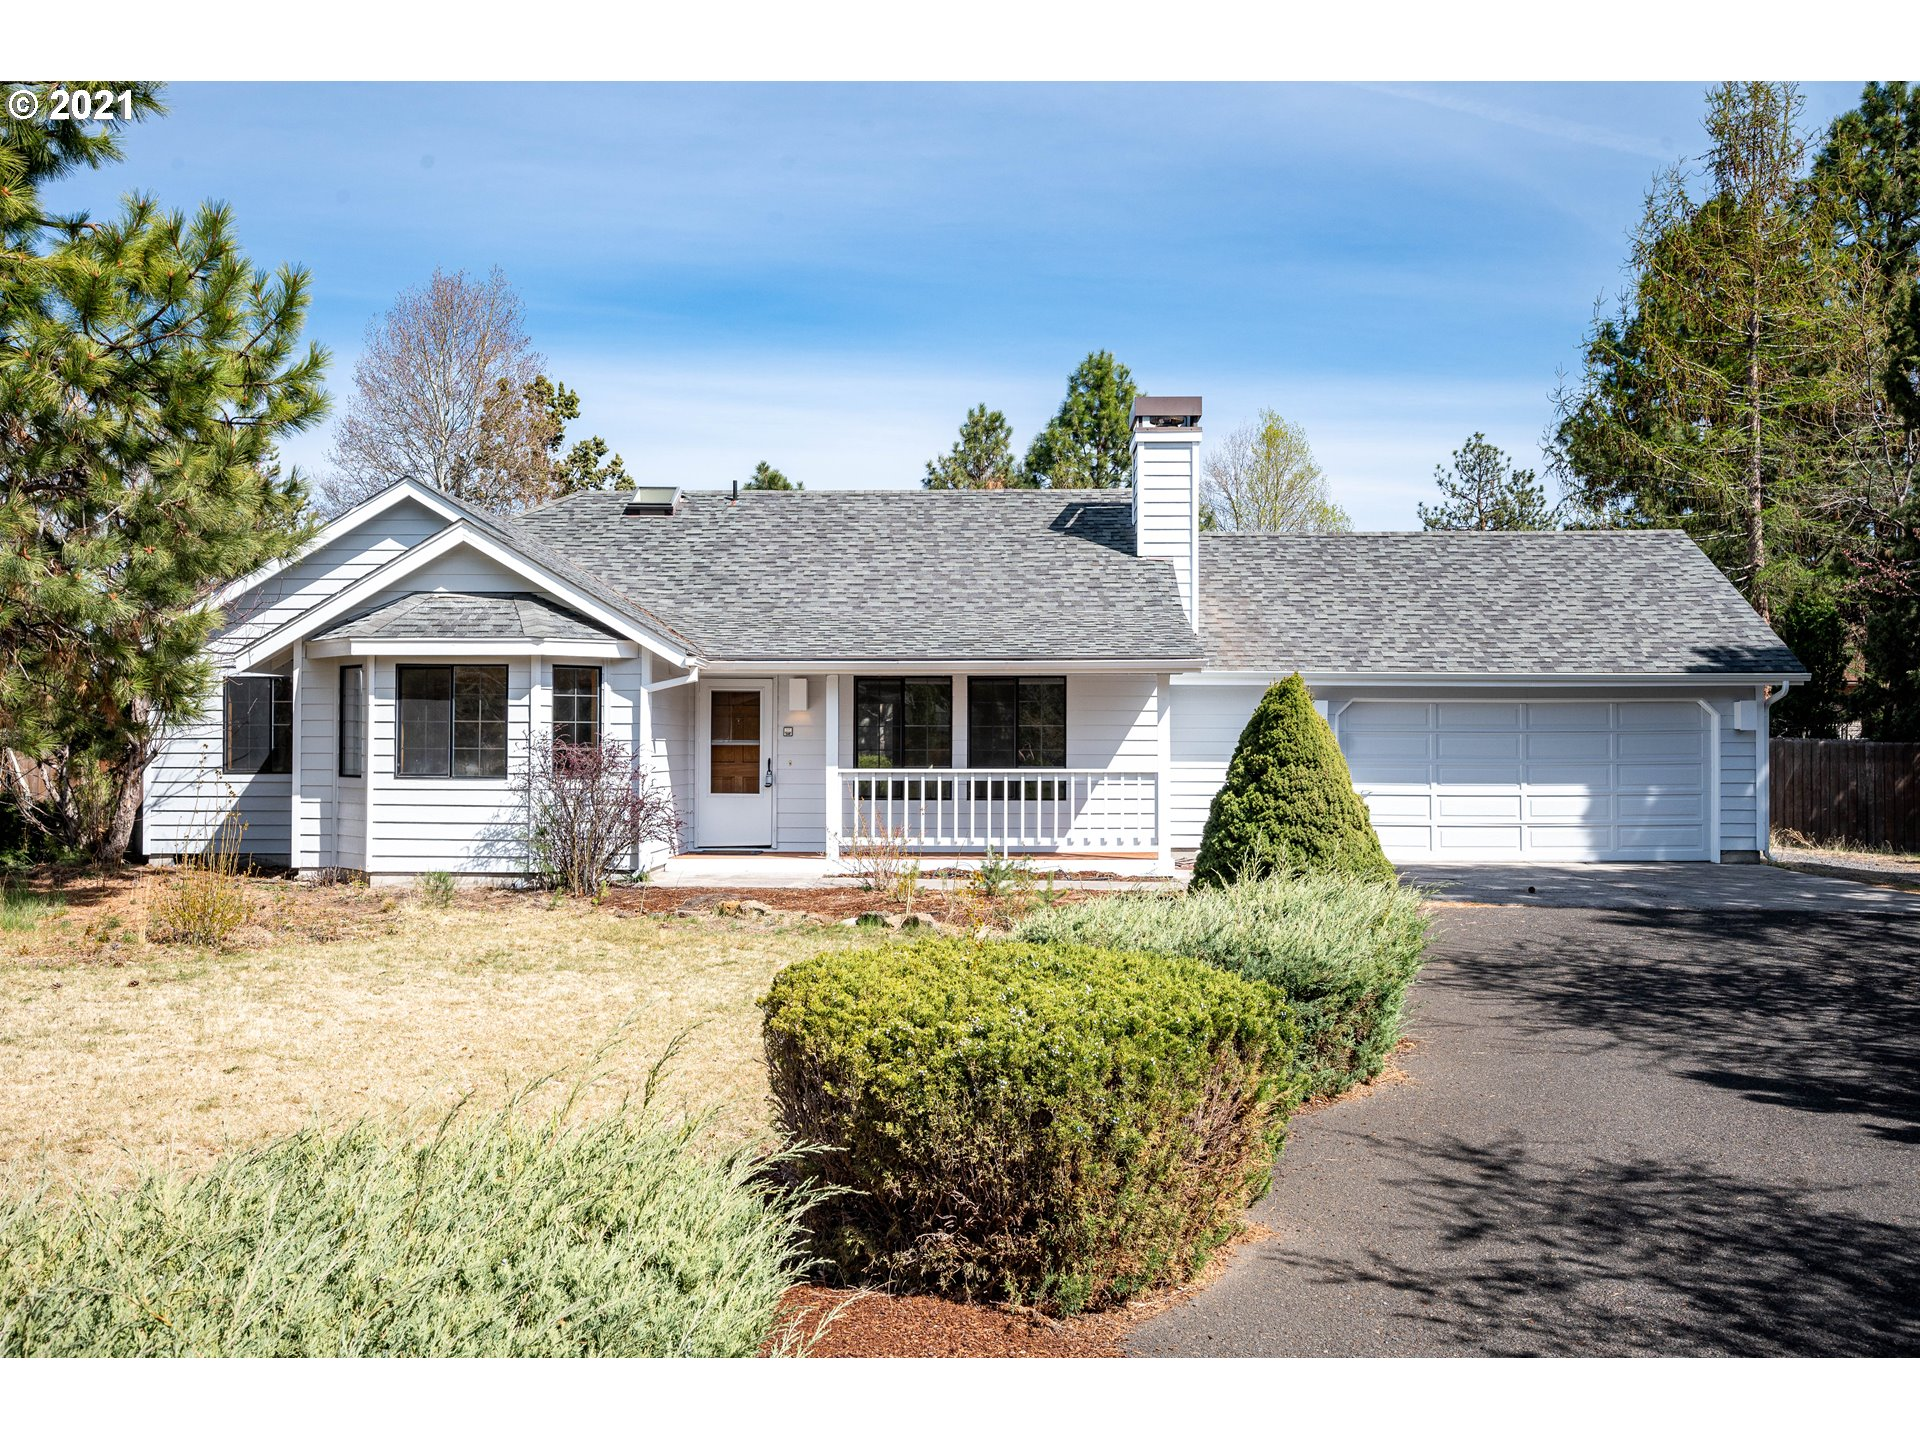 21195 STRAWBERRY MOUNTAIN CT  (1 of 1)